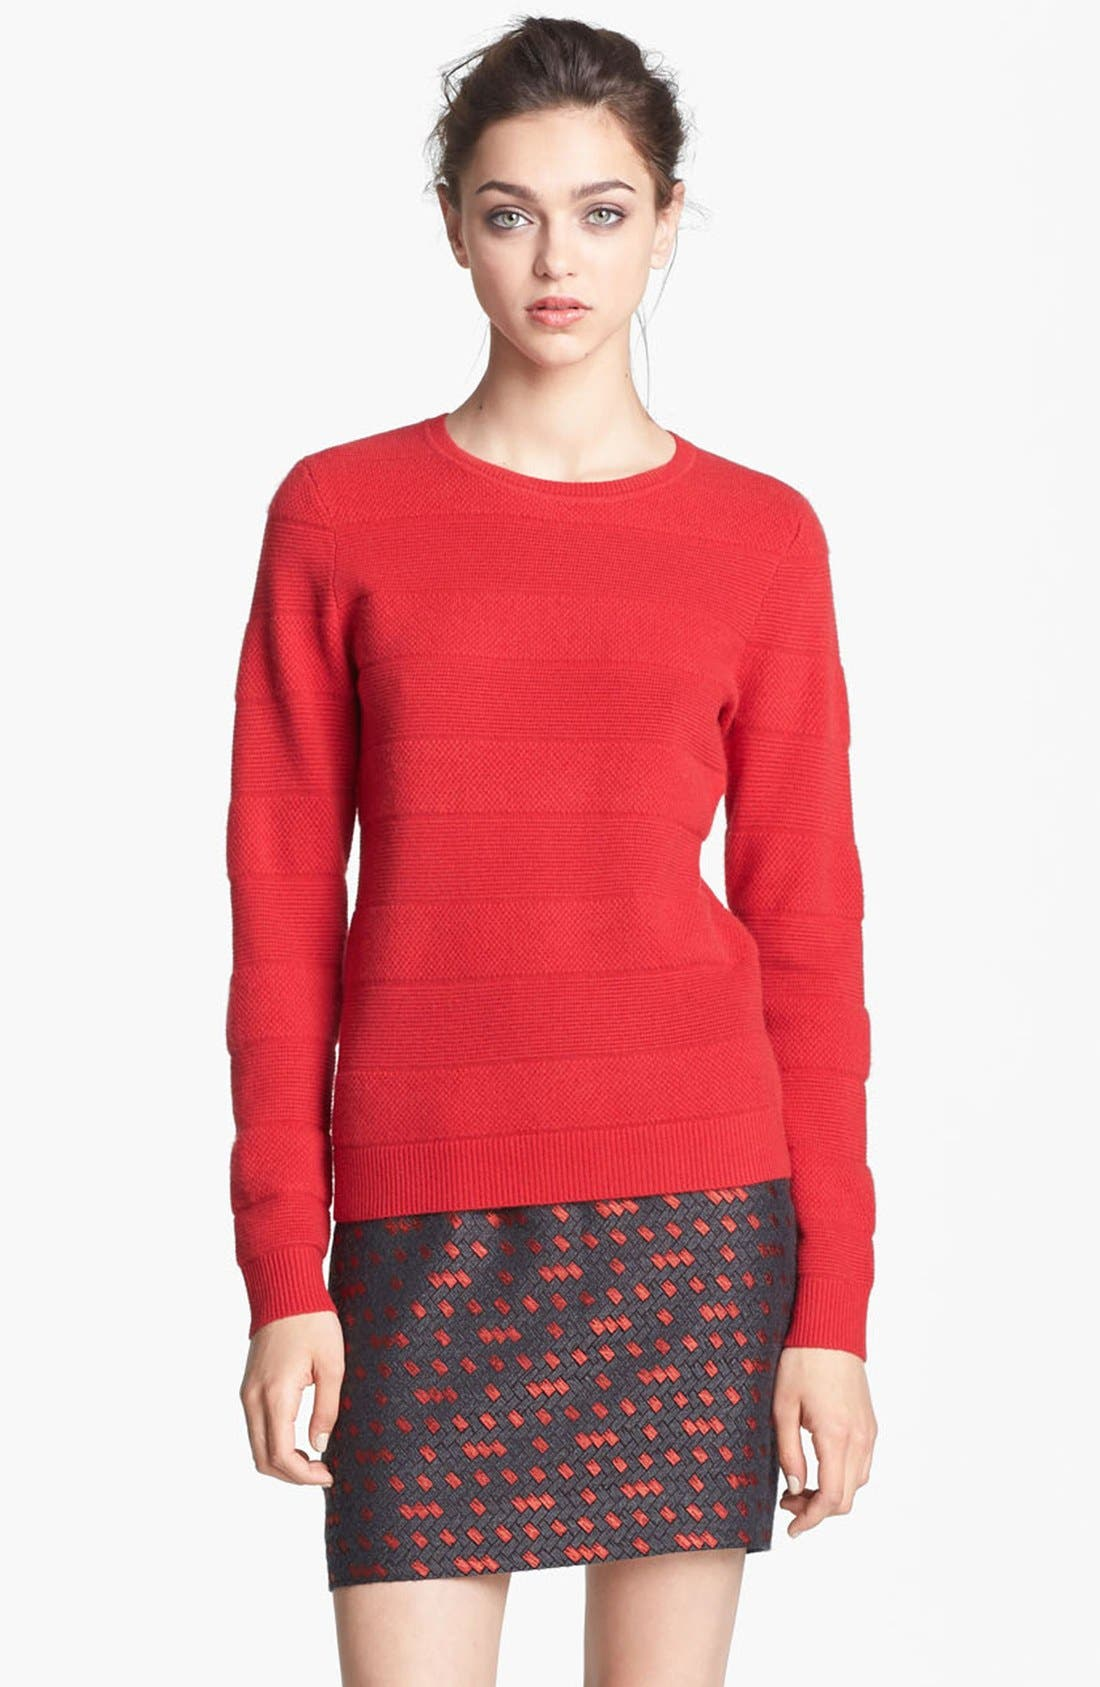 Alternate Image 1 Selected - Miss Wu 'Polimero' Textured Stripe Cashmere Sweater (Nordstrom Exclusive)